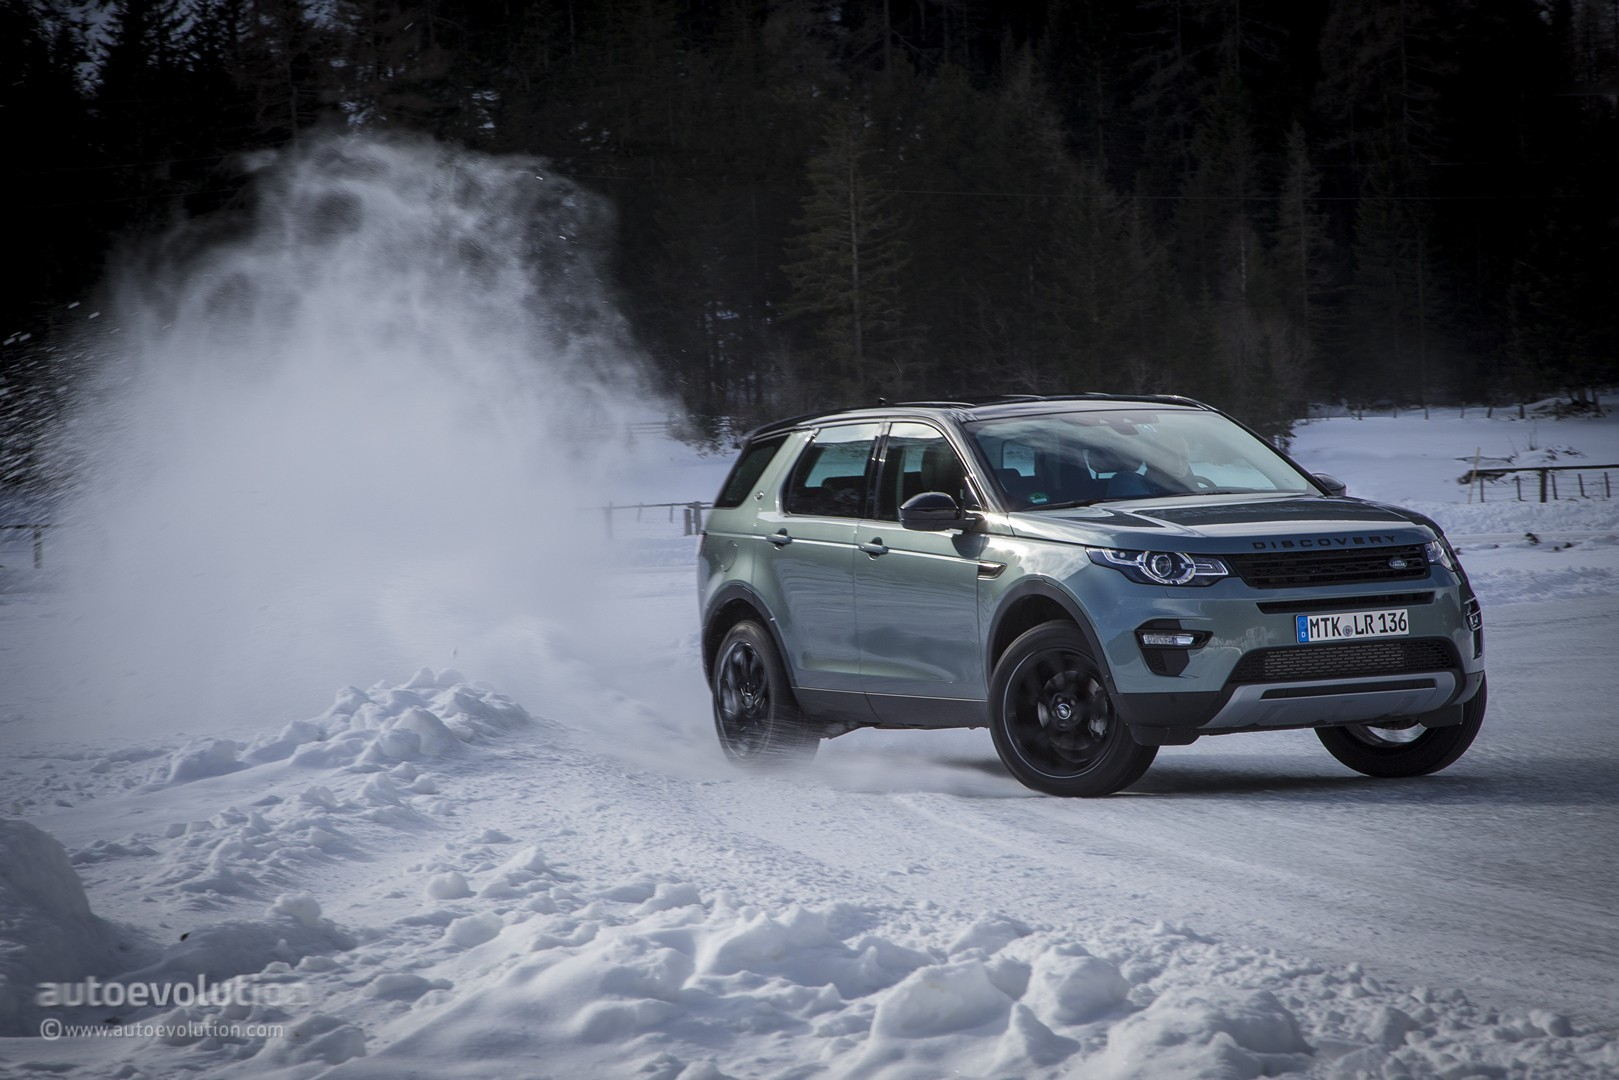 2015 Land Rover Discovery Sport Hd Wallpapers All The